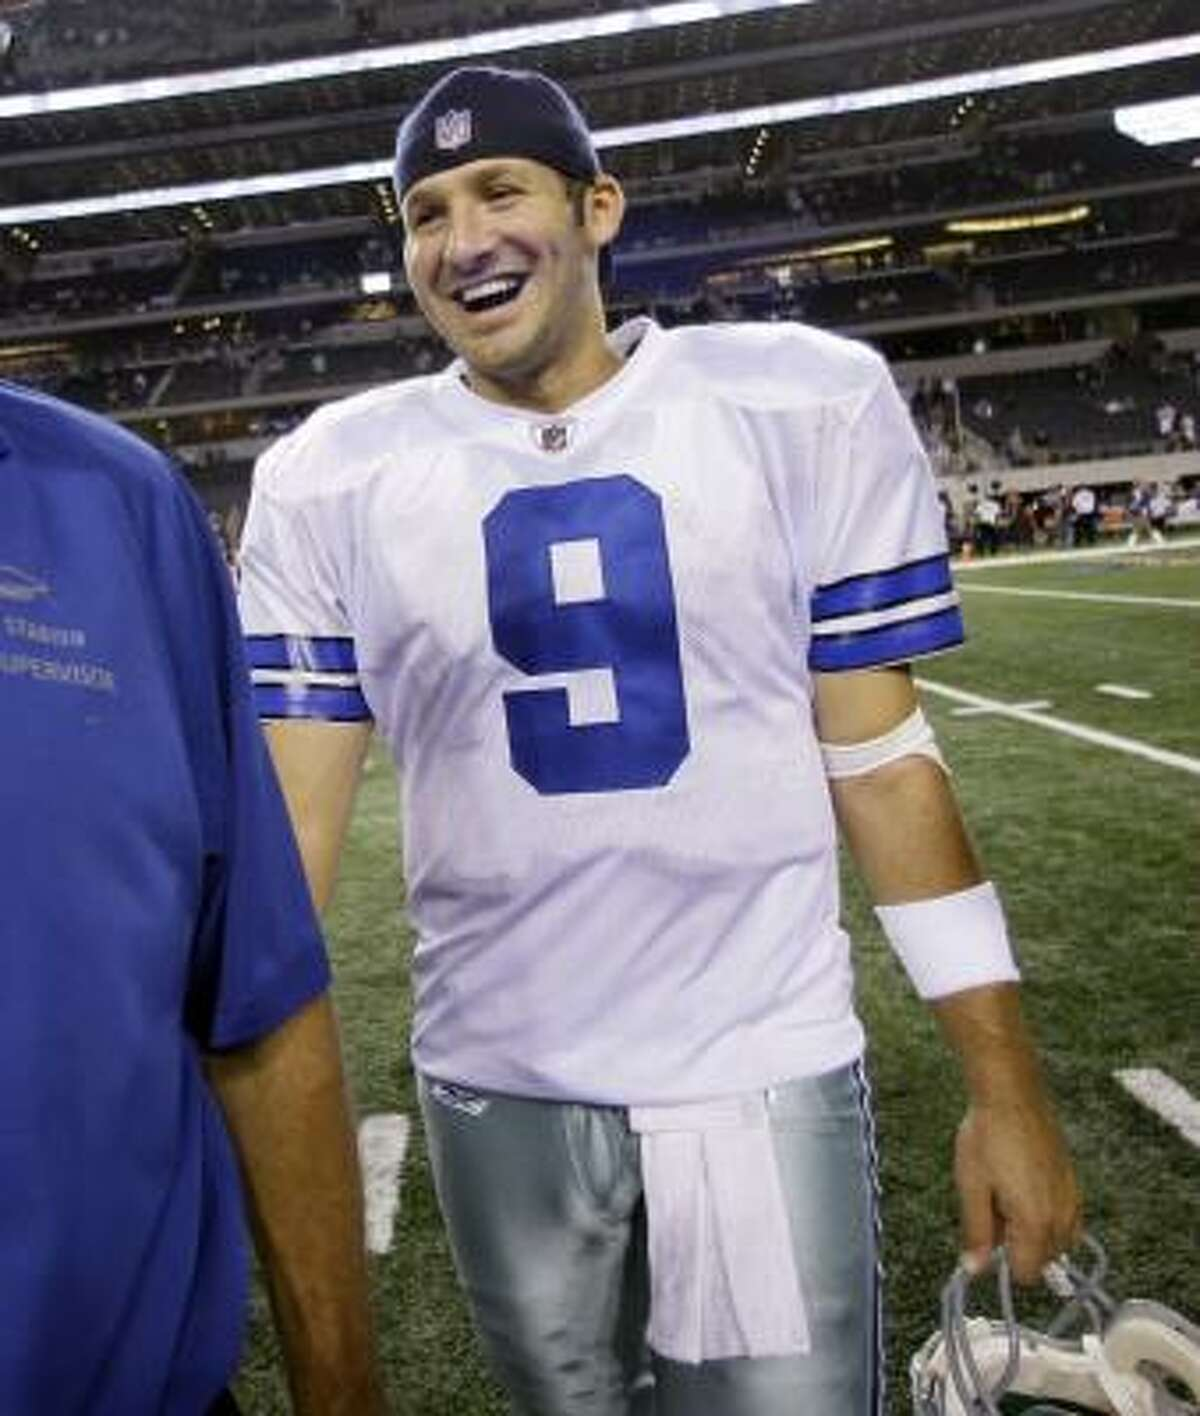 Cowboys 21, Panthers 7 Dallas Cowboys quarterback Tony Romo smiles as he walks off the field at the end of the game after defeating the Panthers 21-7.